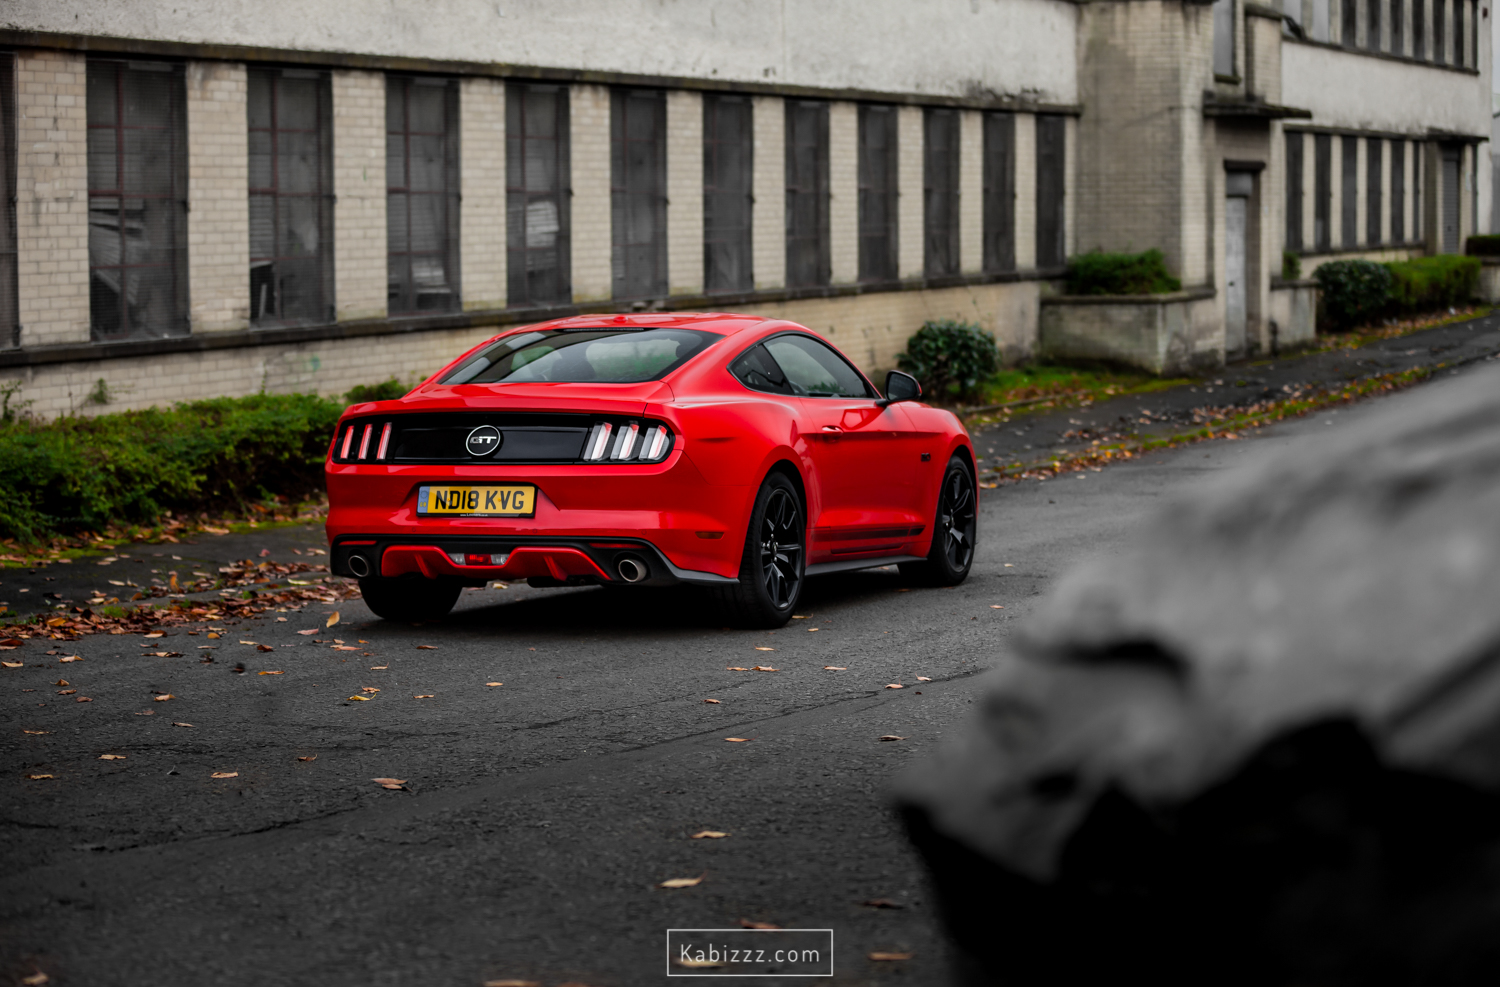 2018_ford_mustang_red_scotland_photography_automotive_photography_kabizzz.jpg